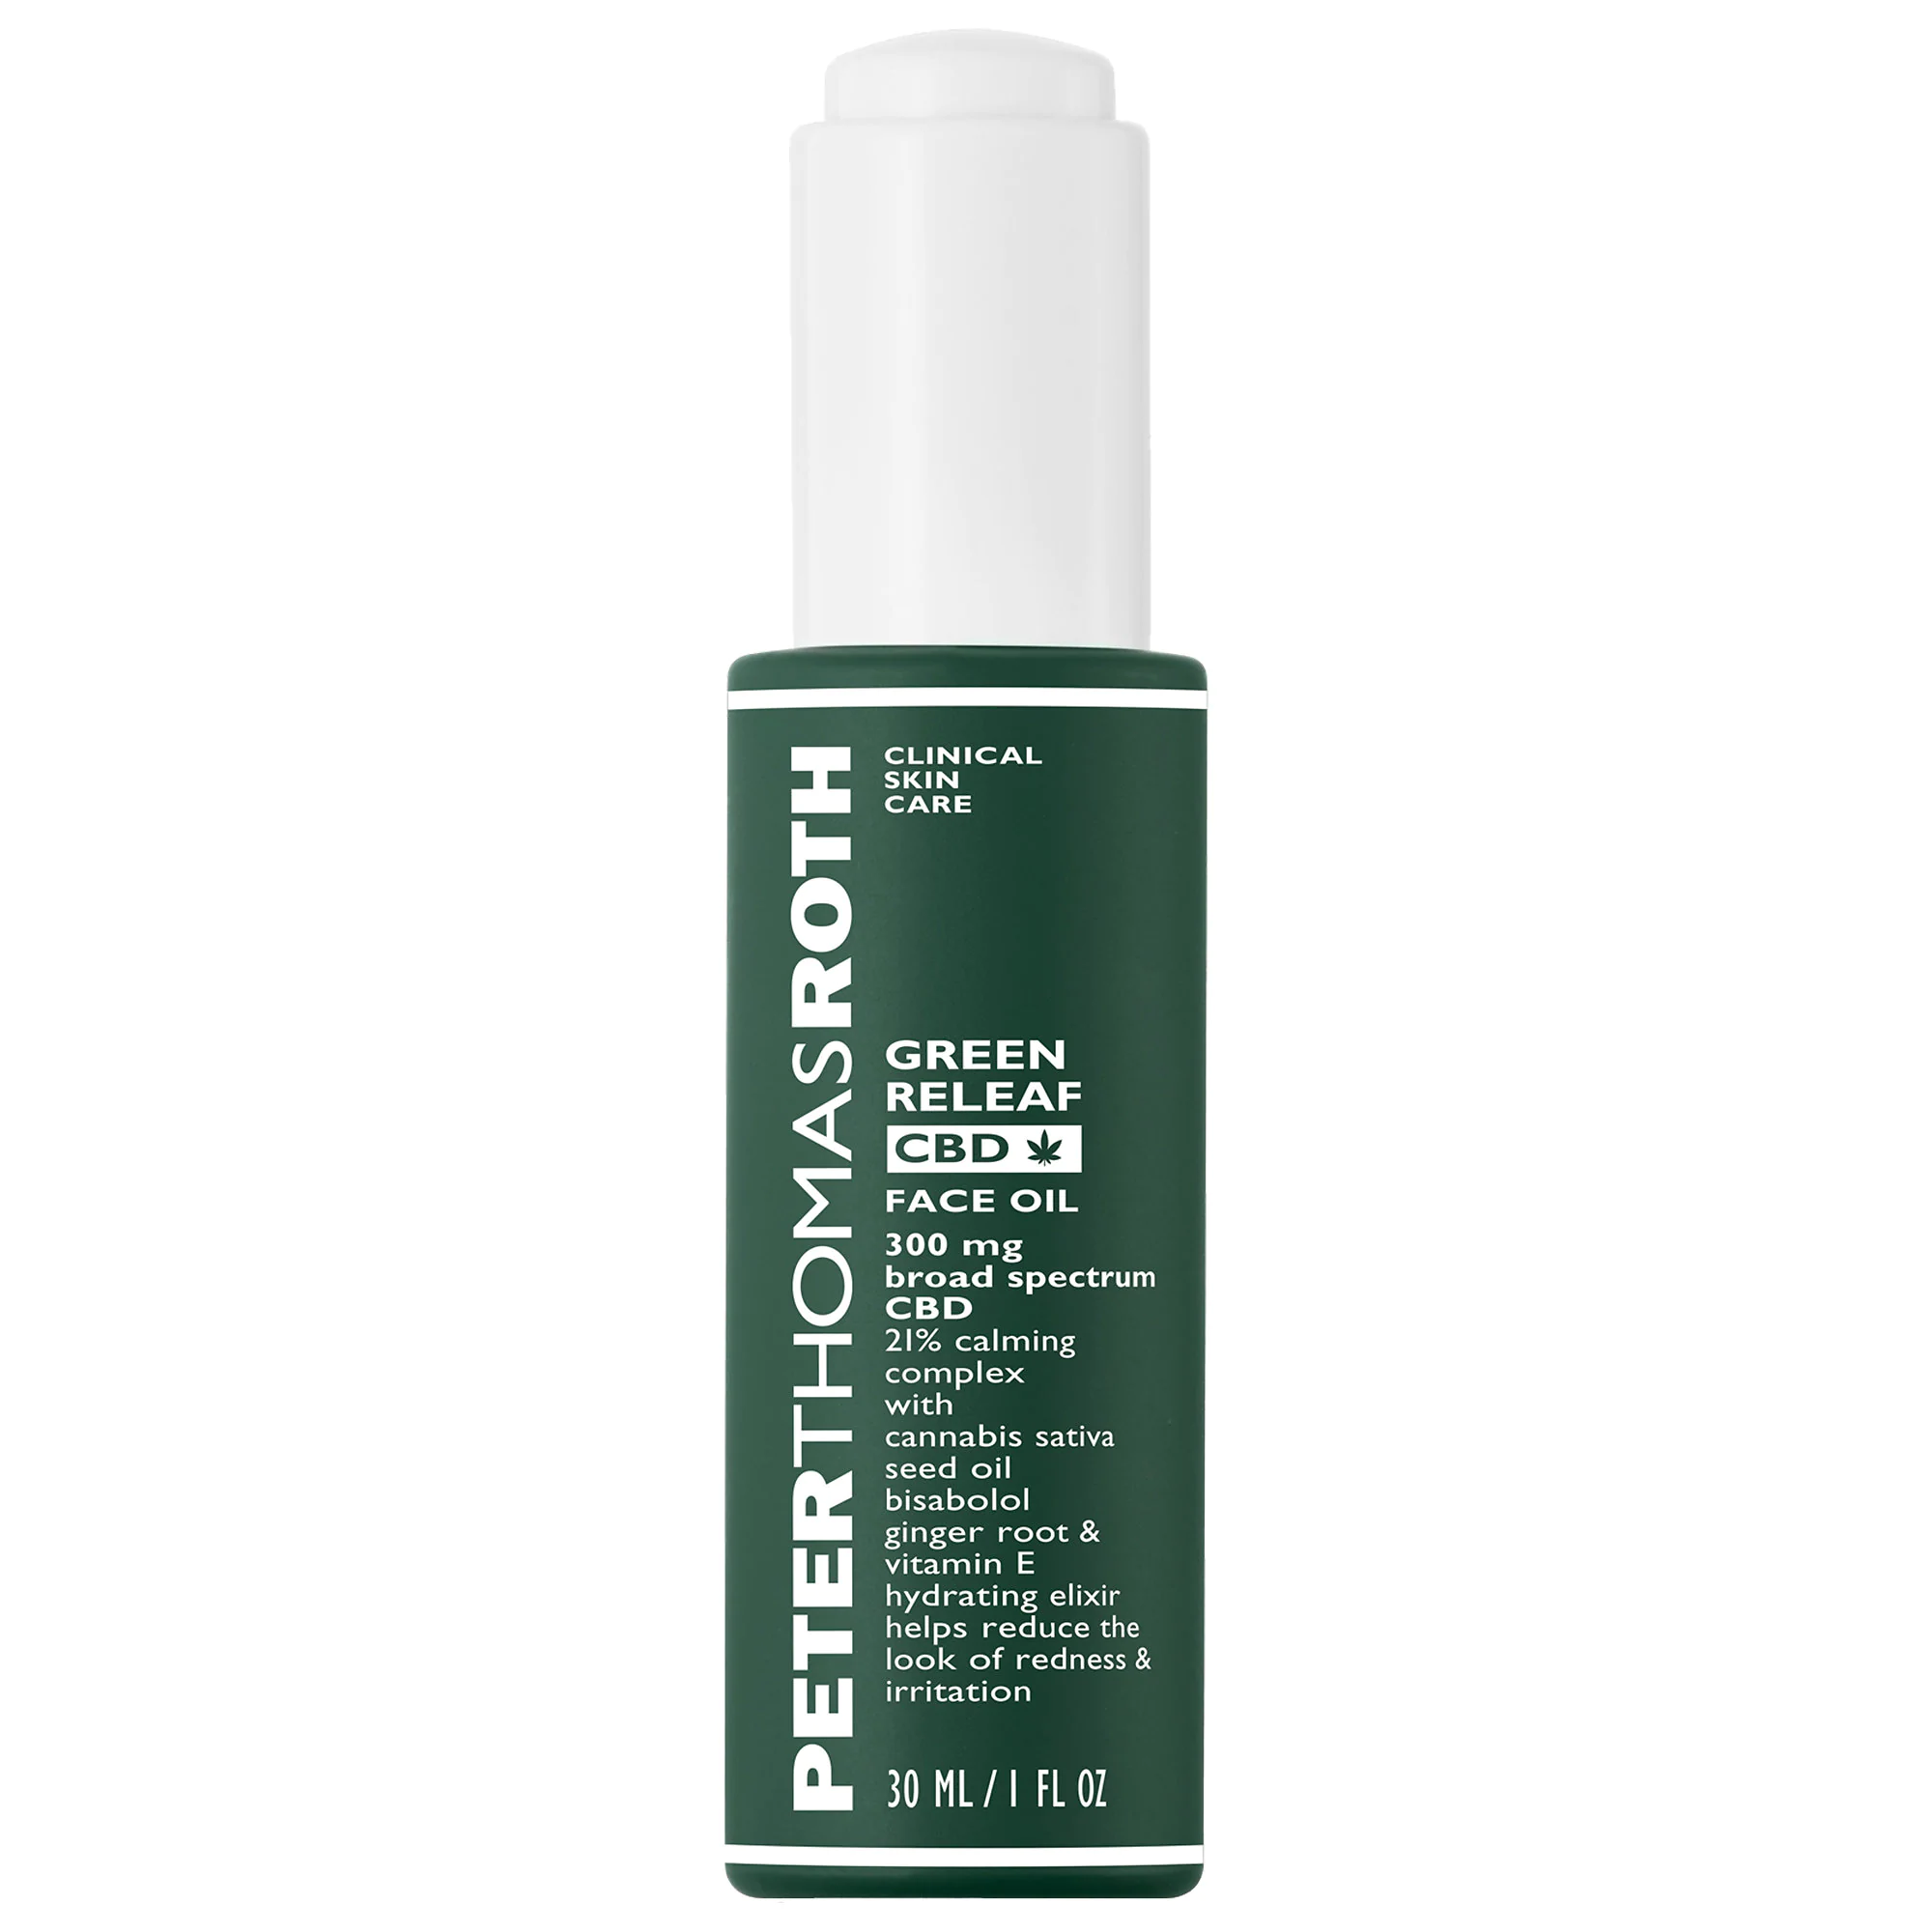 Peter Thomas Roth Green Releaf Cbd Calming Face Oil